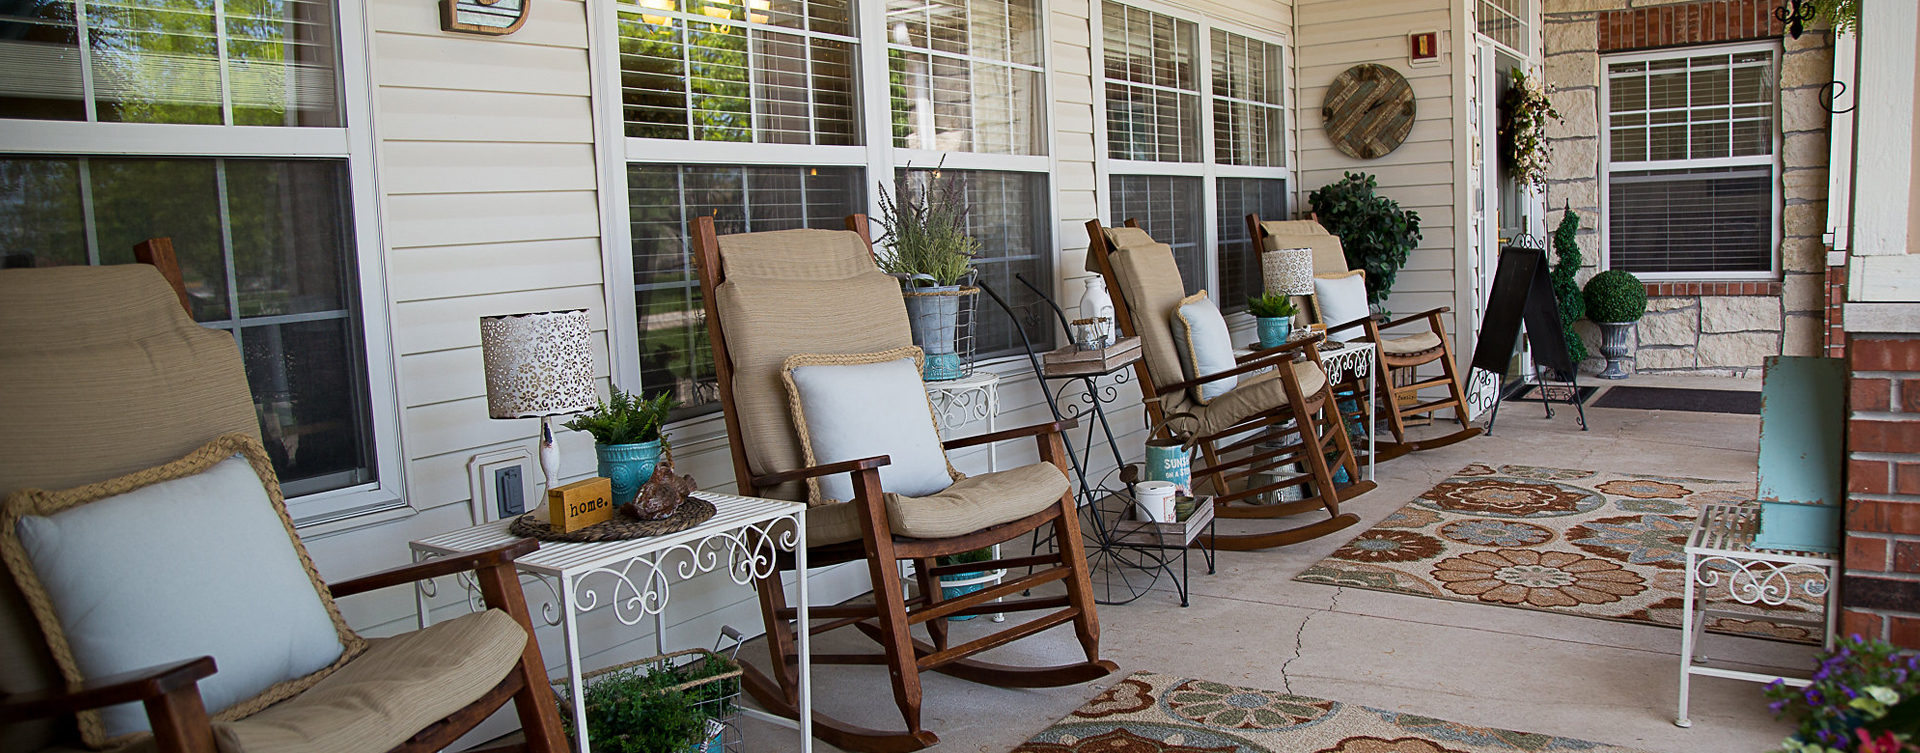 Relax in your favorite chair on the porch at Bickford of Burlington